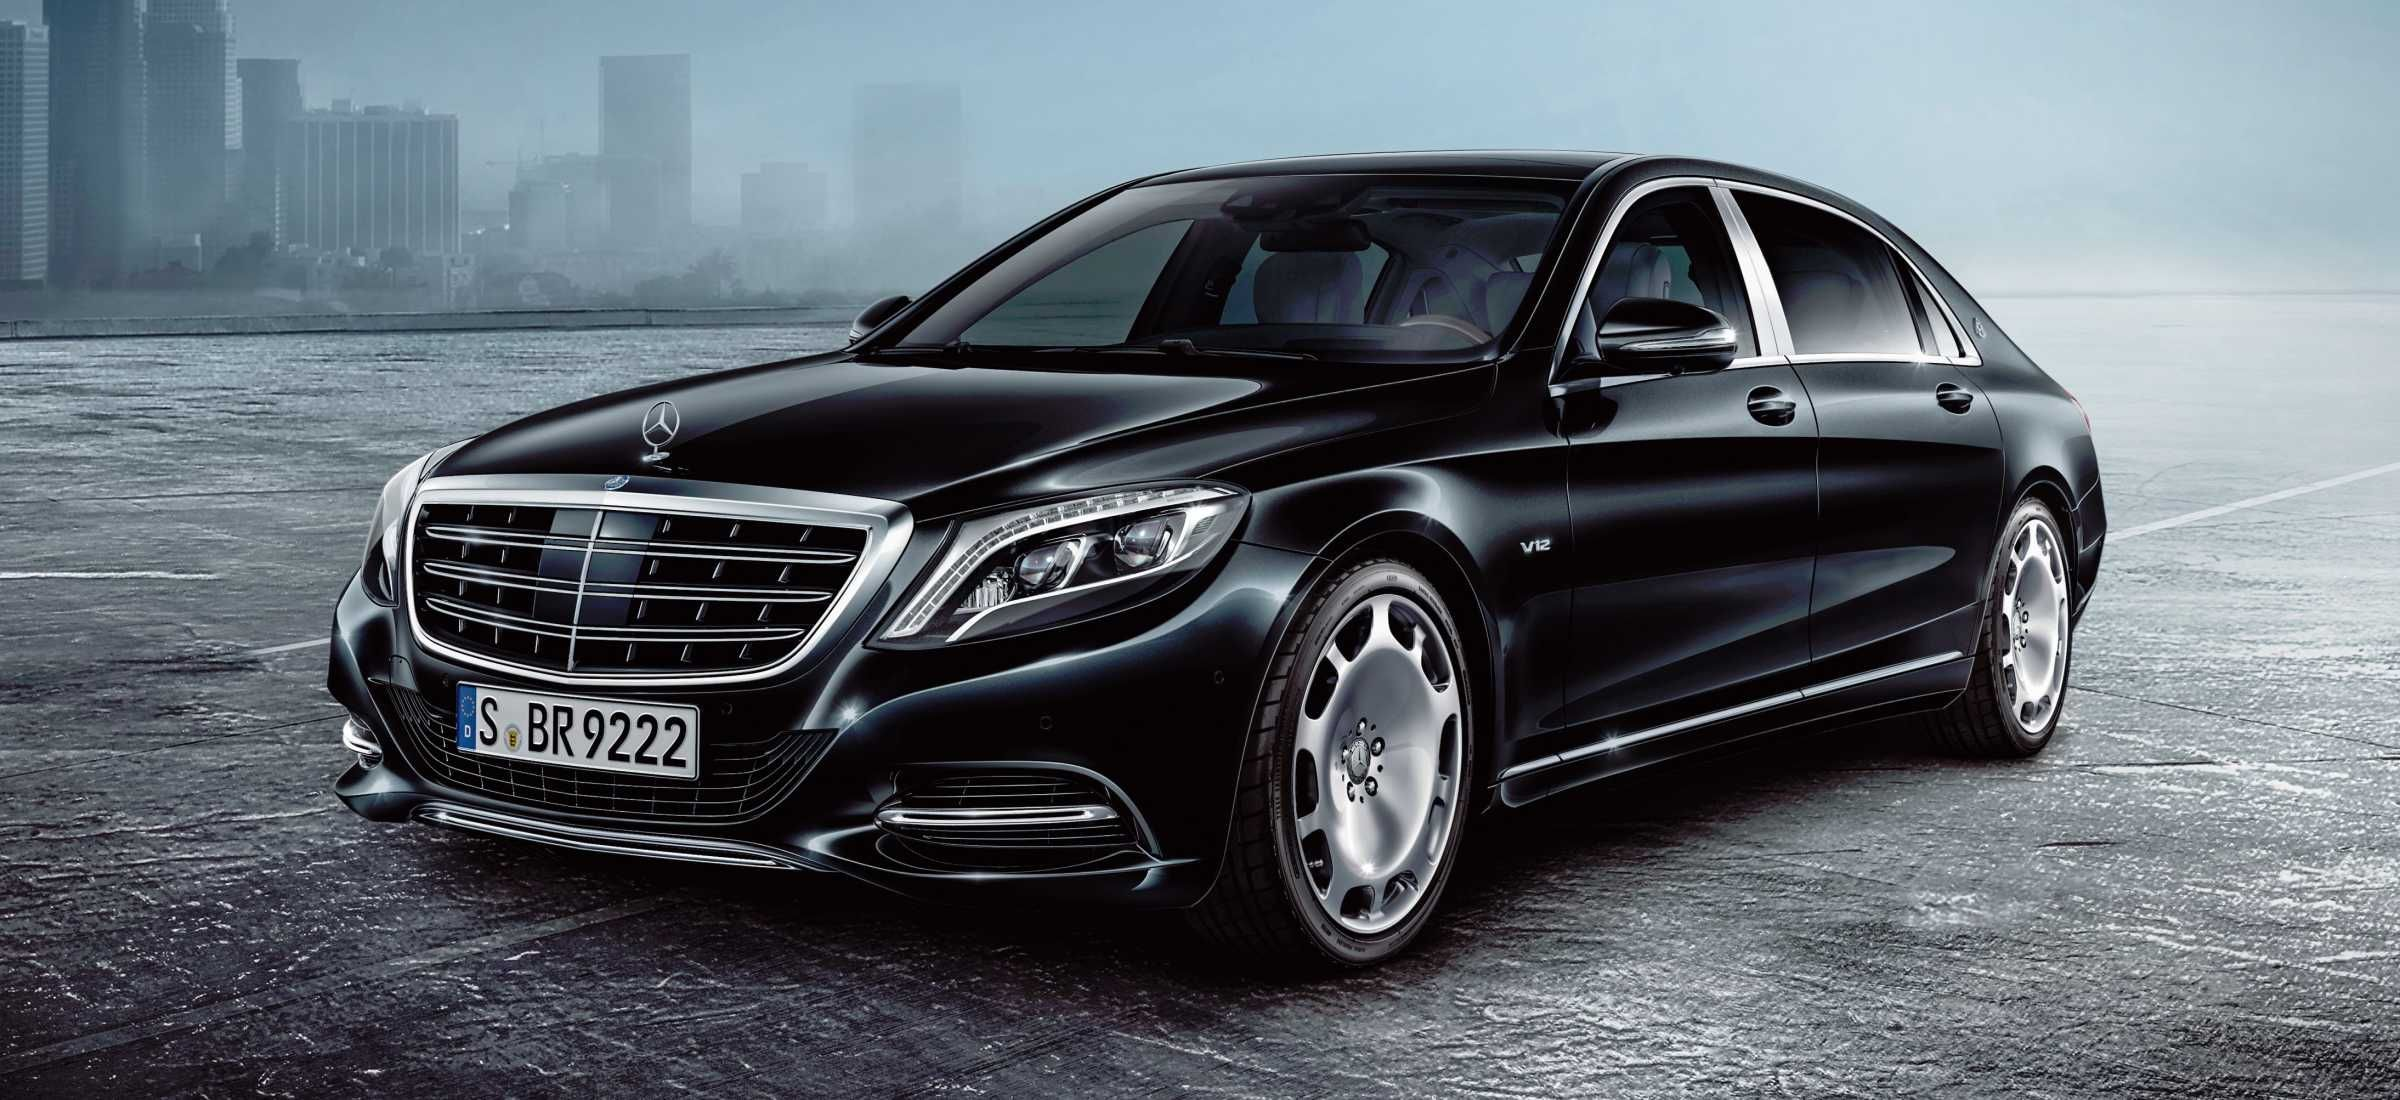 Mercedes Brings Presidential Level Security To Their Mercedes